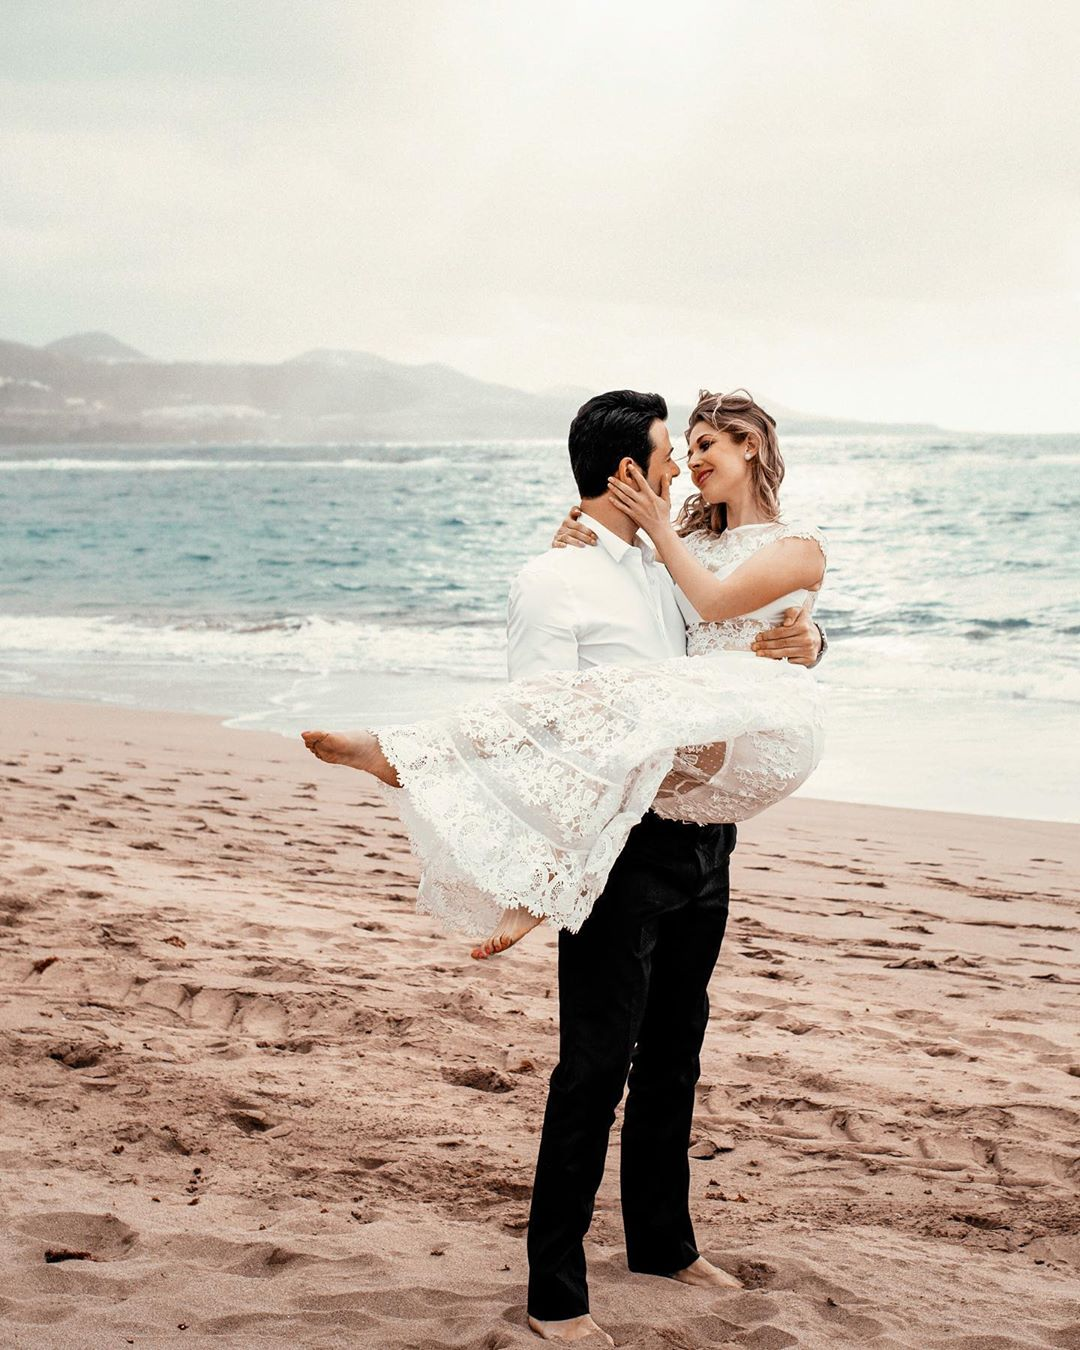 Las Palmas Wedding Photographer